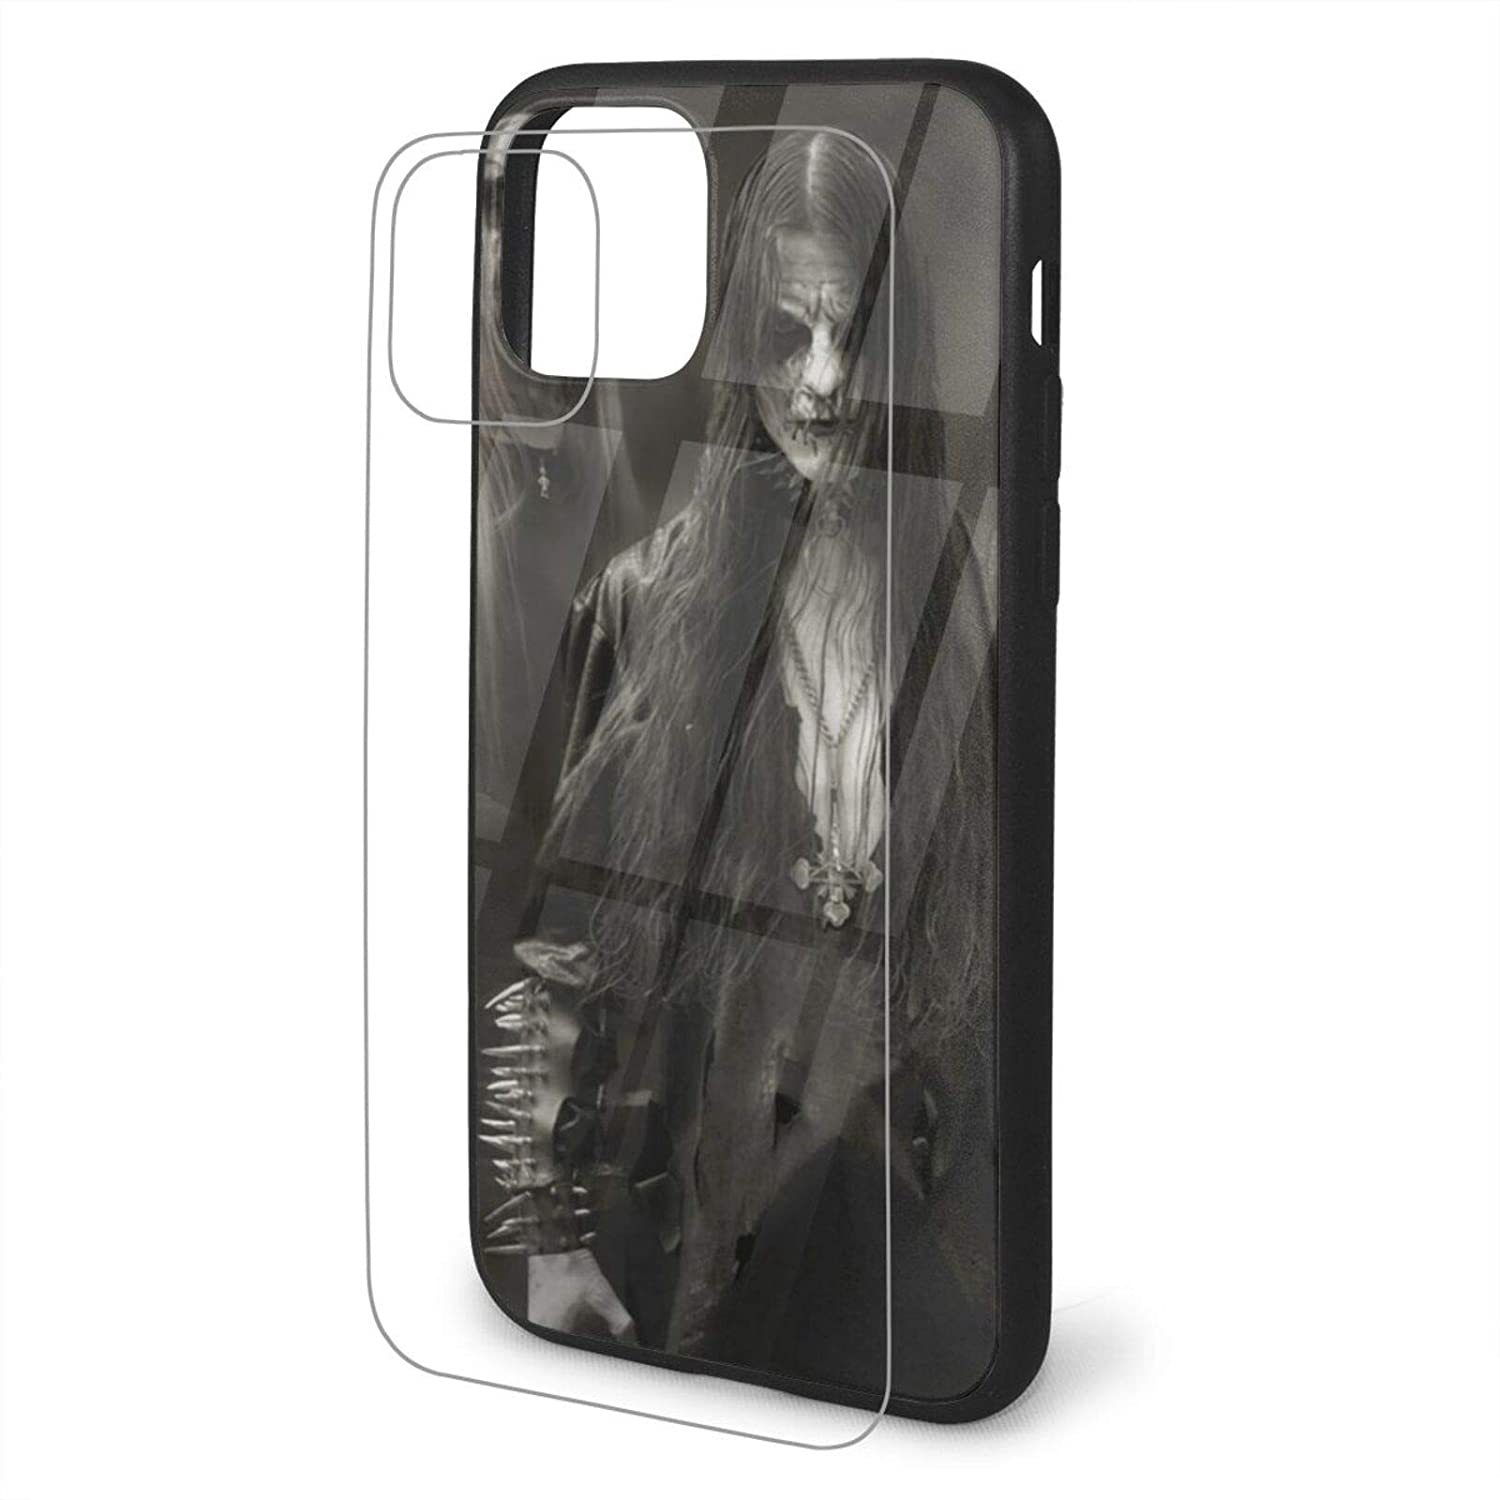 SXDCFV Gorgoroth Glass Phone Case iPhone 11 Series Personalized Design Printed Shockproof iPhone 11 Pro max